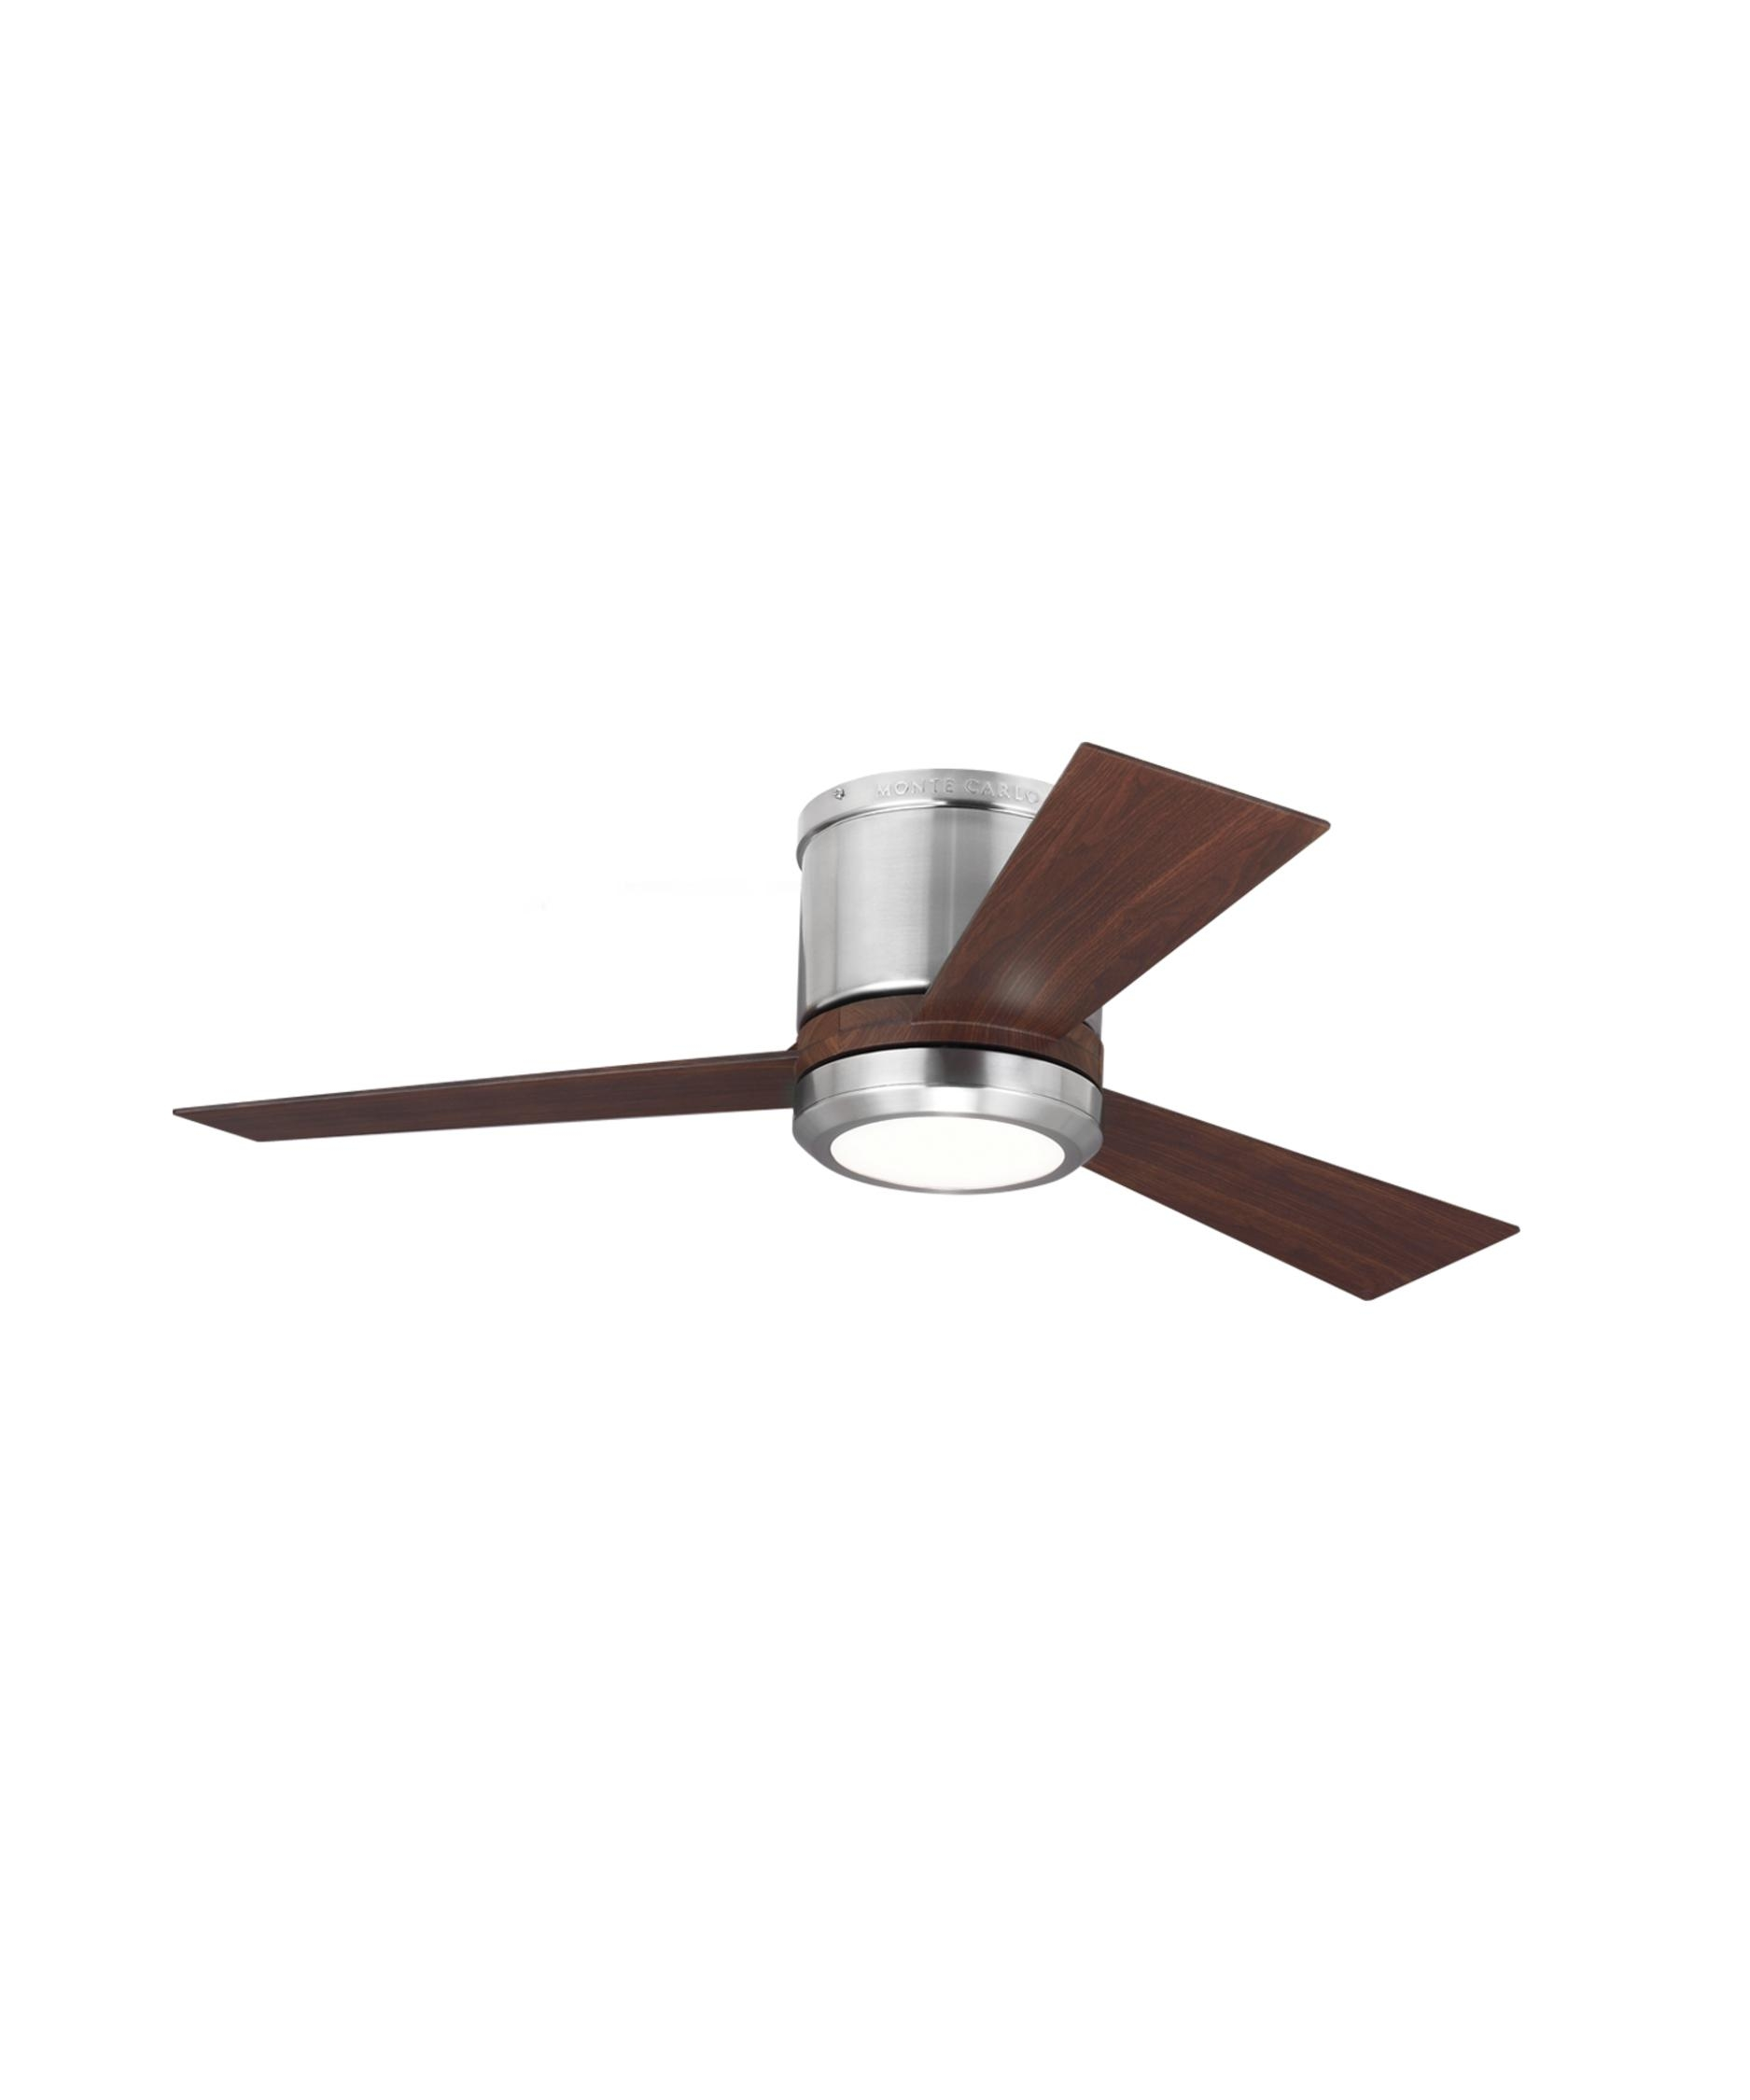 42 Ceiling Fans With Led Lights